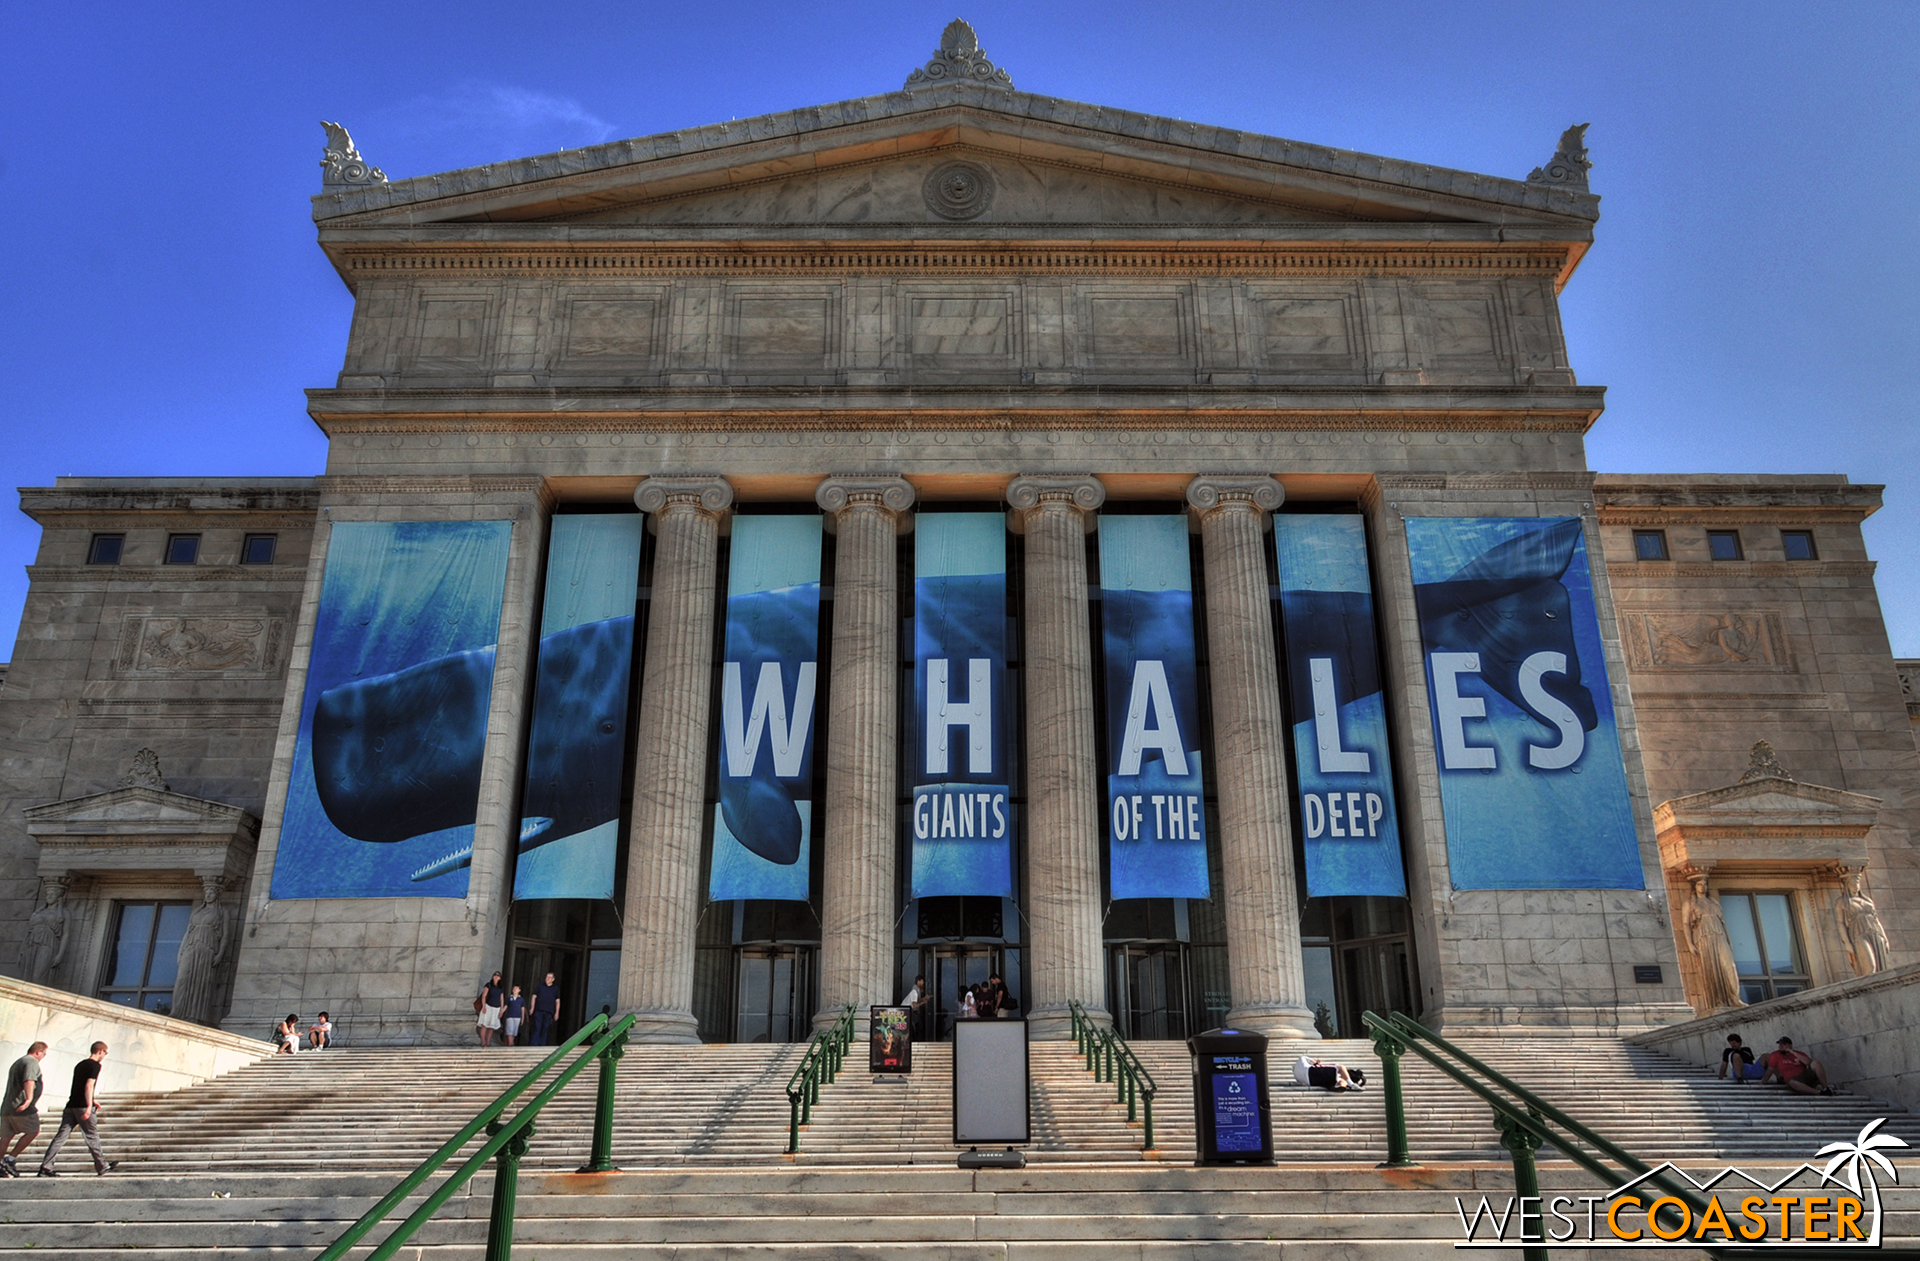 The Field Museum is a wonderful natural history museum that is great fun for kids and adults alike.